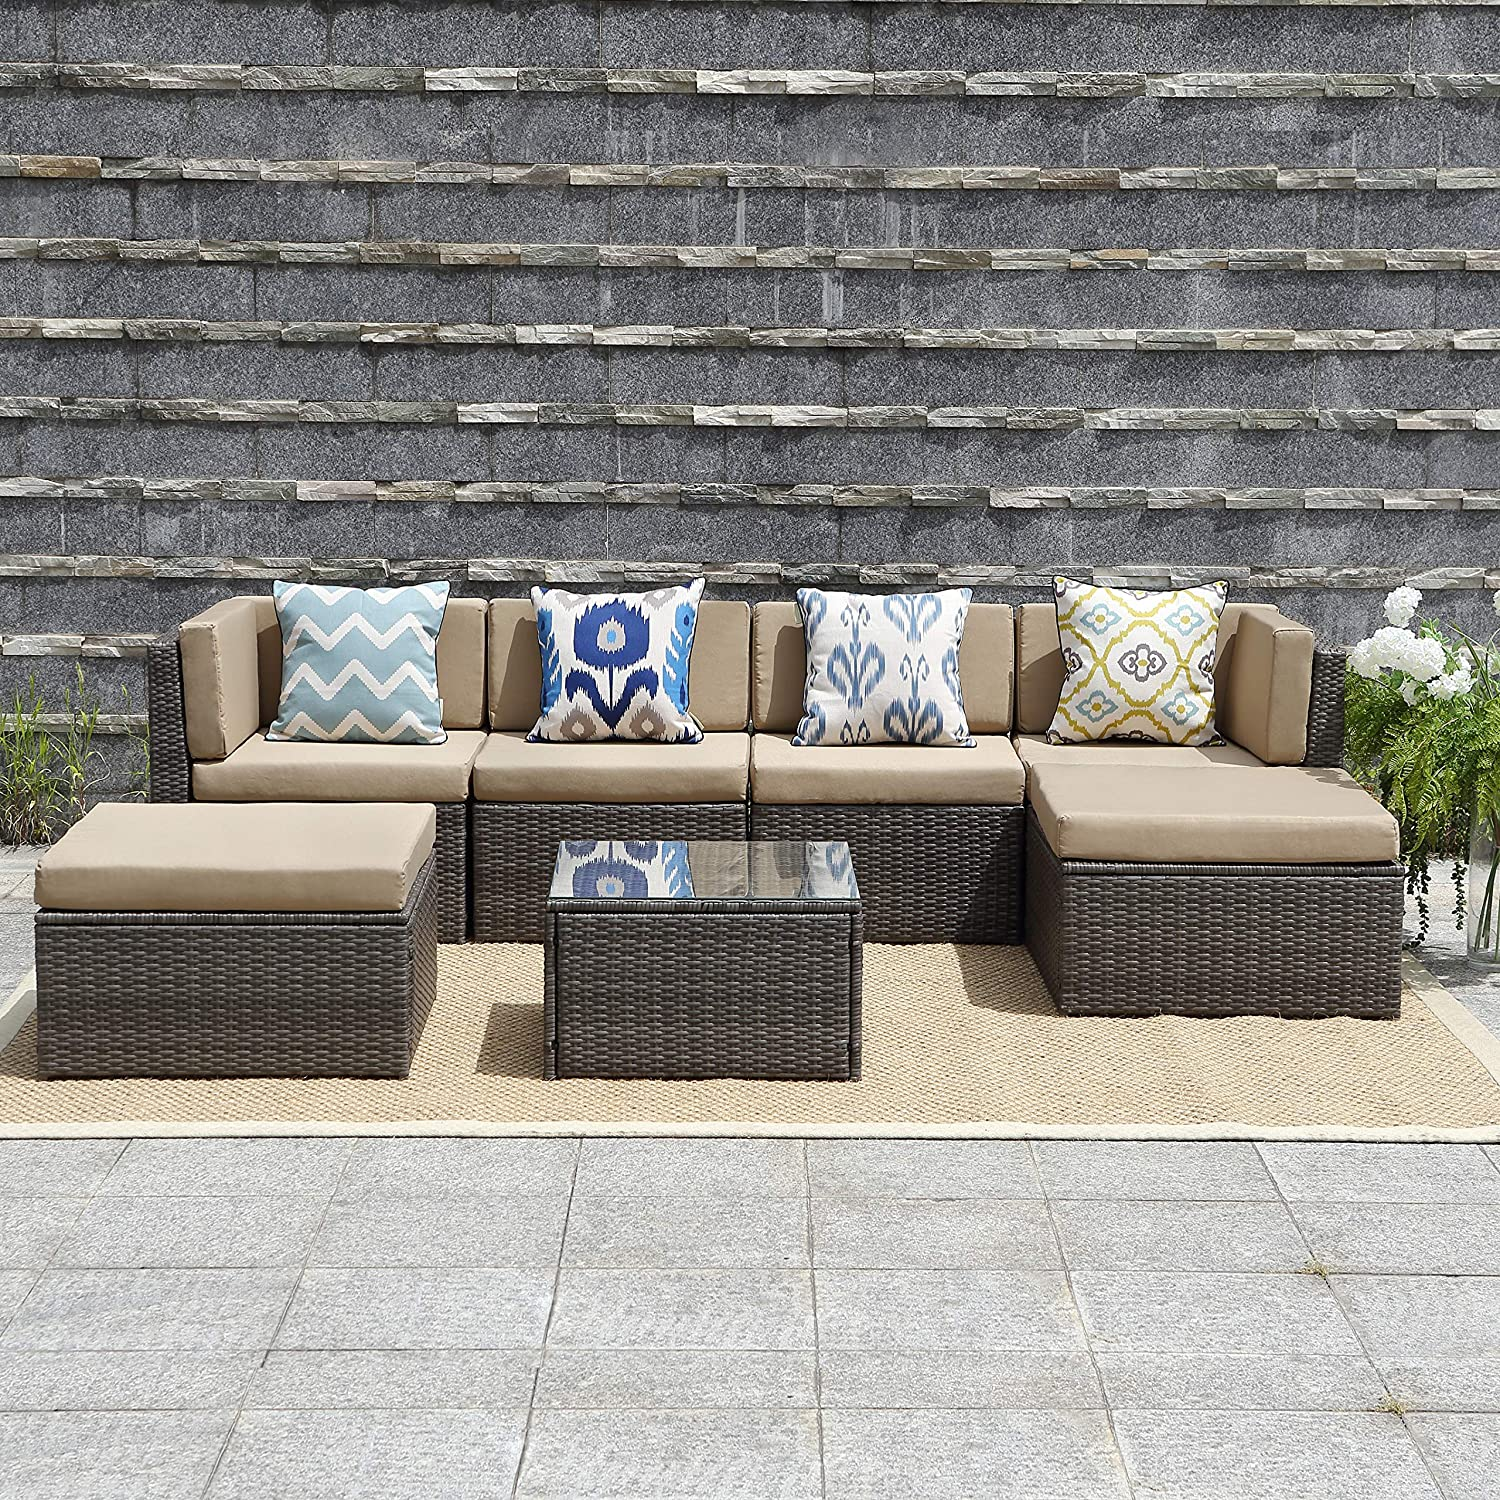 Wisteria lane 7 piece outdoor furniture sets patio sectional sofa couch all weather wicker rattan conversation set with ottoma glass table grey wicker